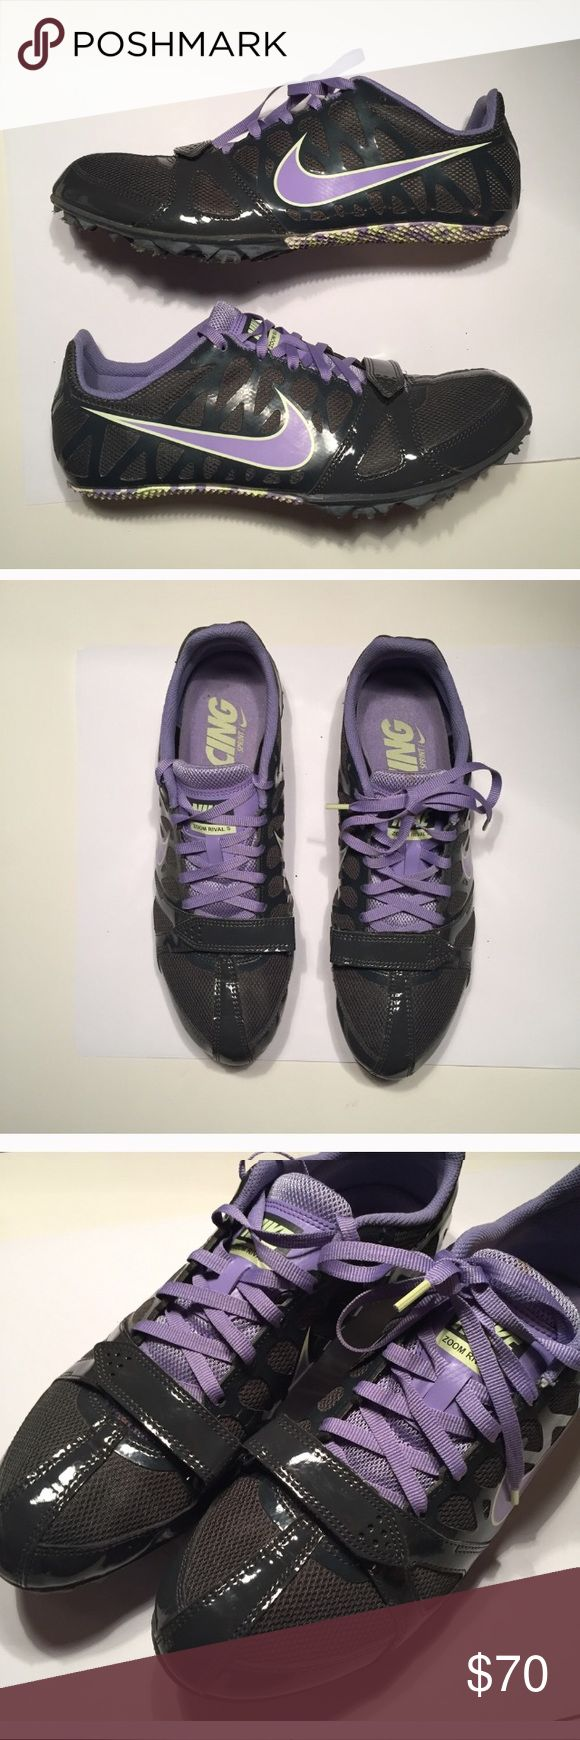 Nike cycling shoes size 10 Super cool Nike cycling shoes size 10 in excellent condition wore a couple times Nike Shoes Sneakers